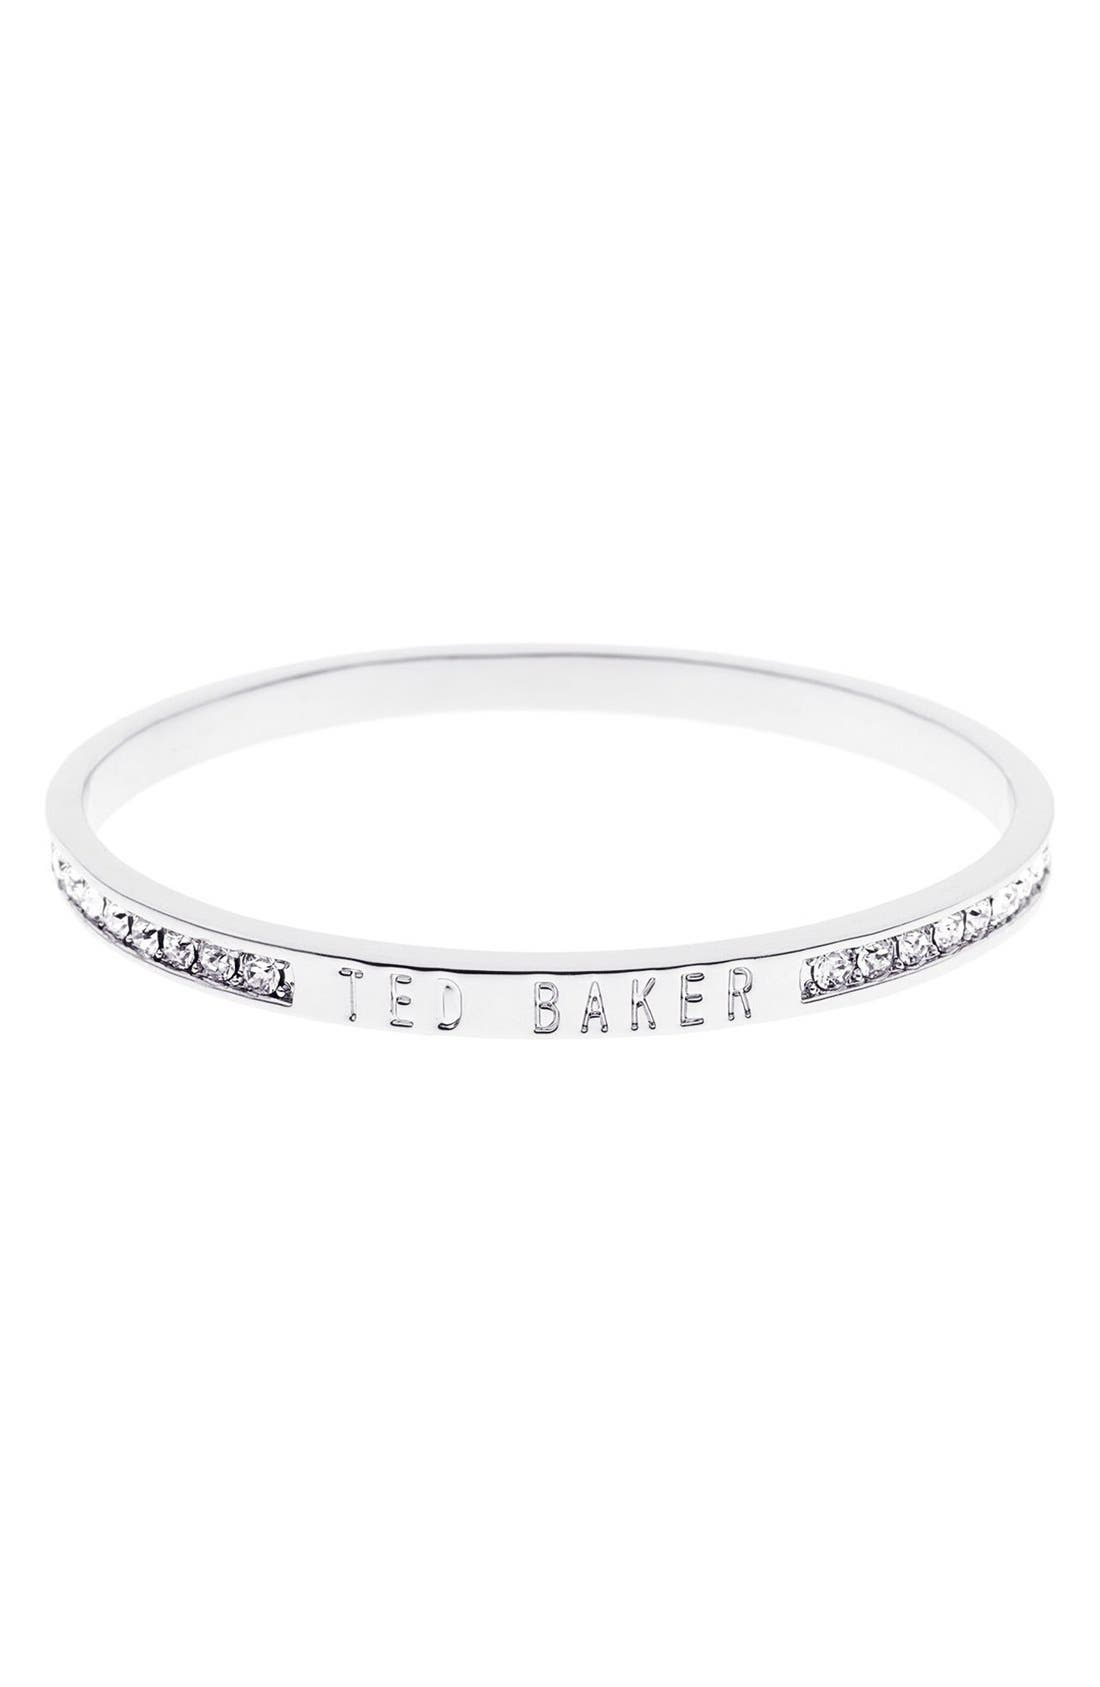 Ted Baker London 'Clem' Narrow Crystal Bangle